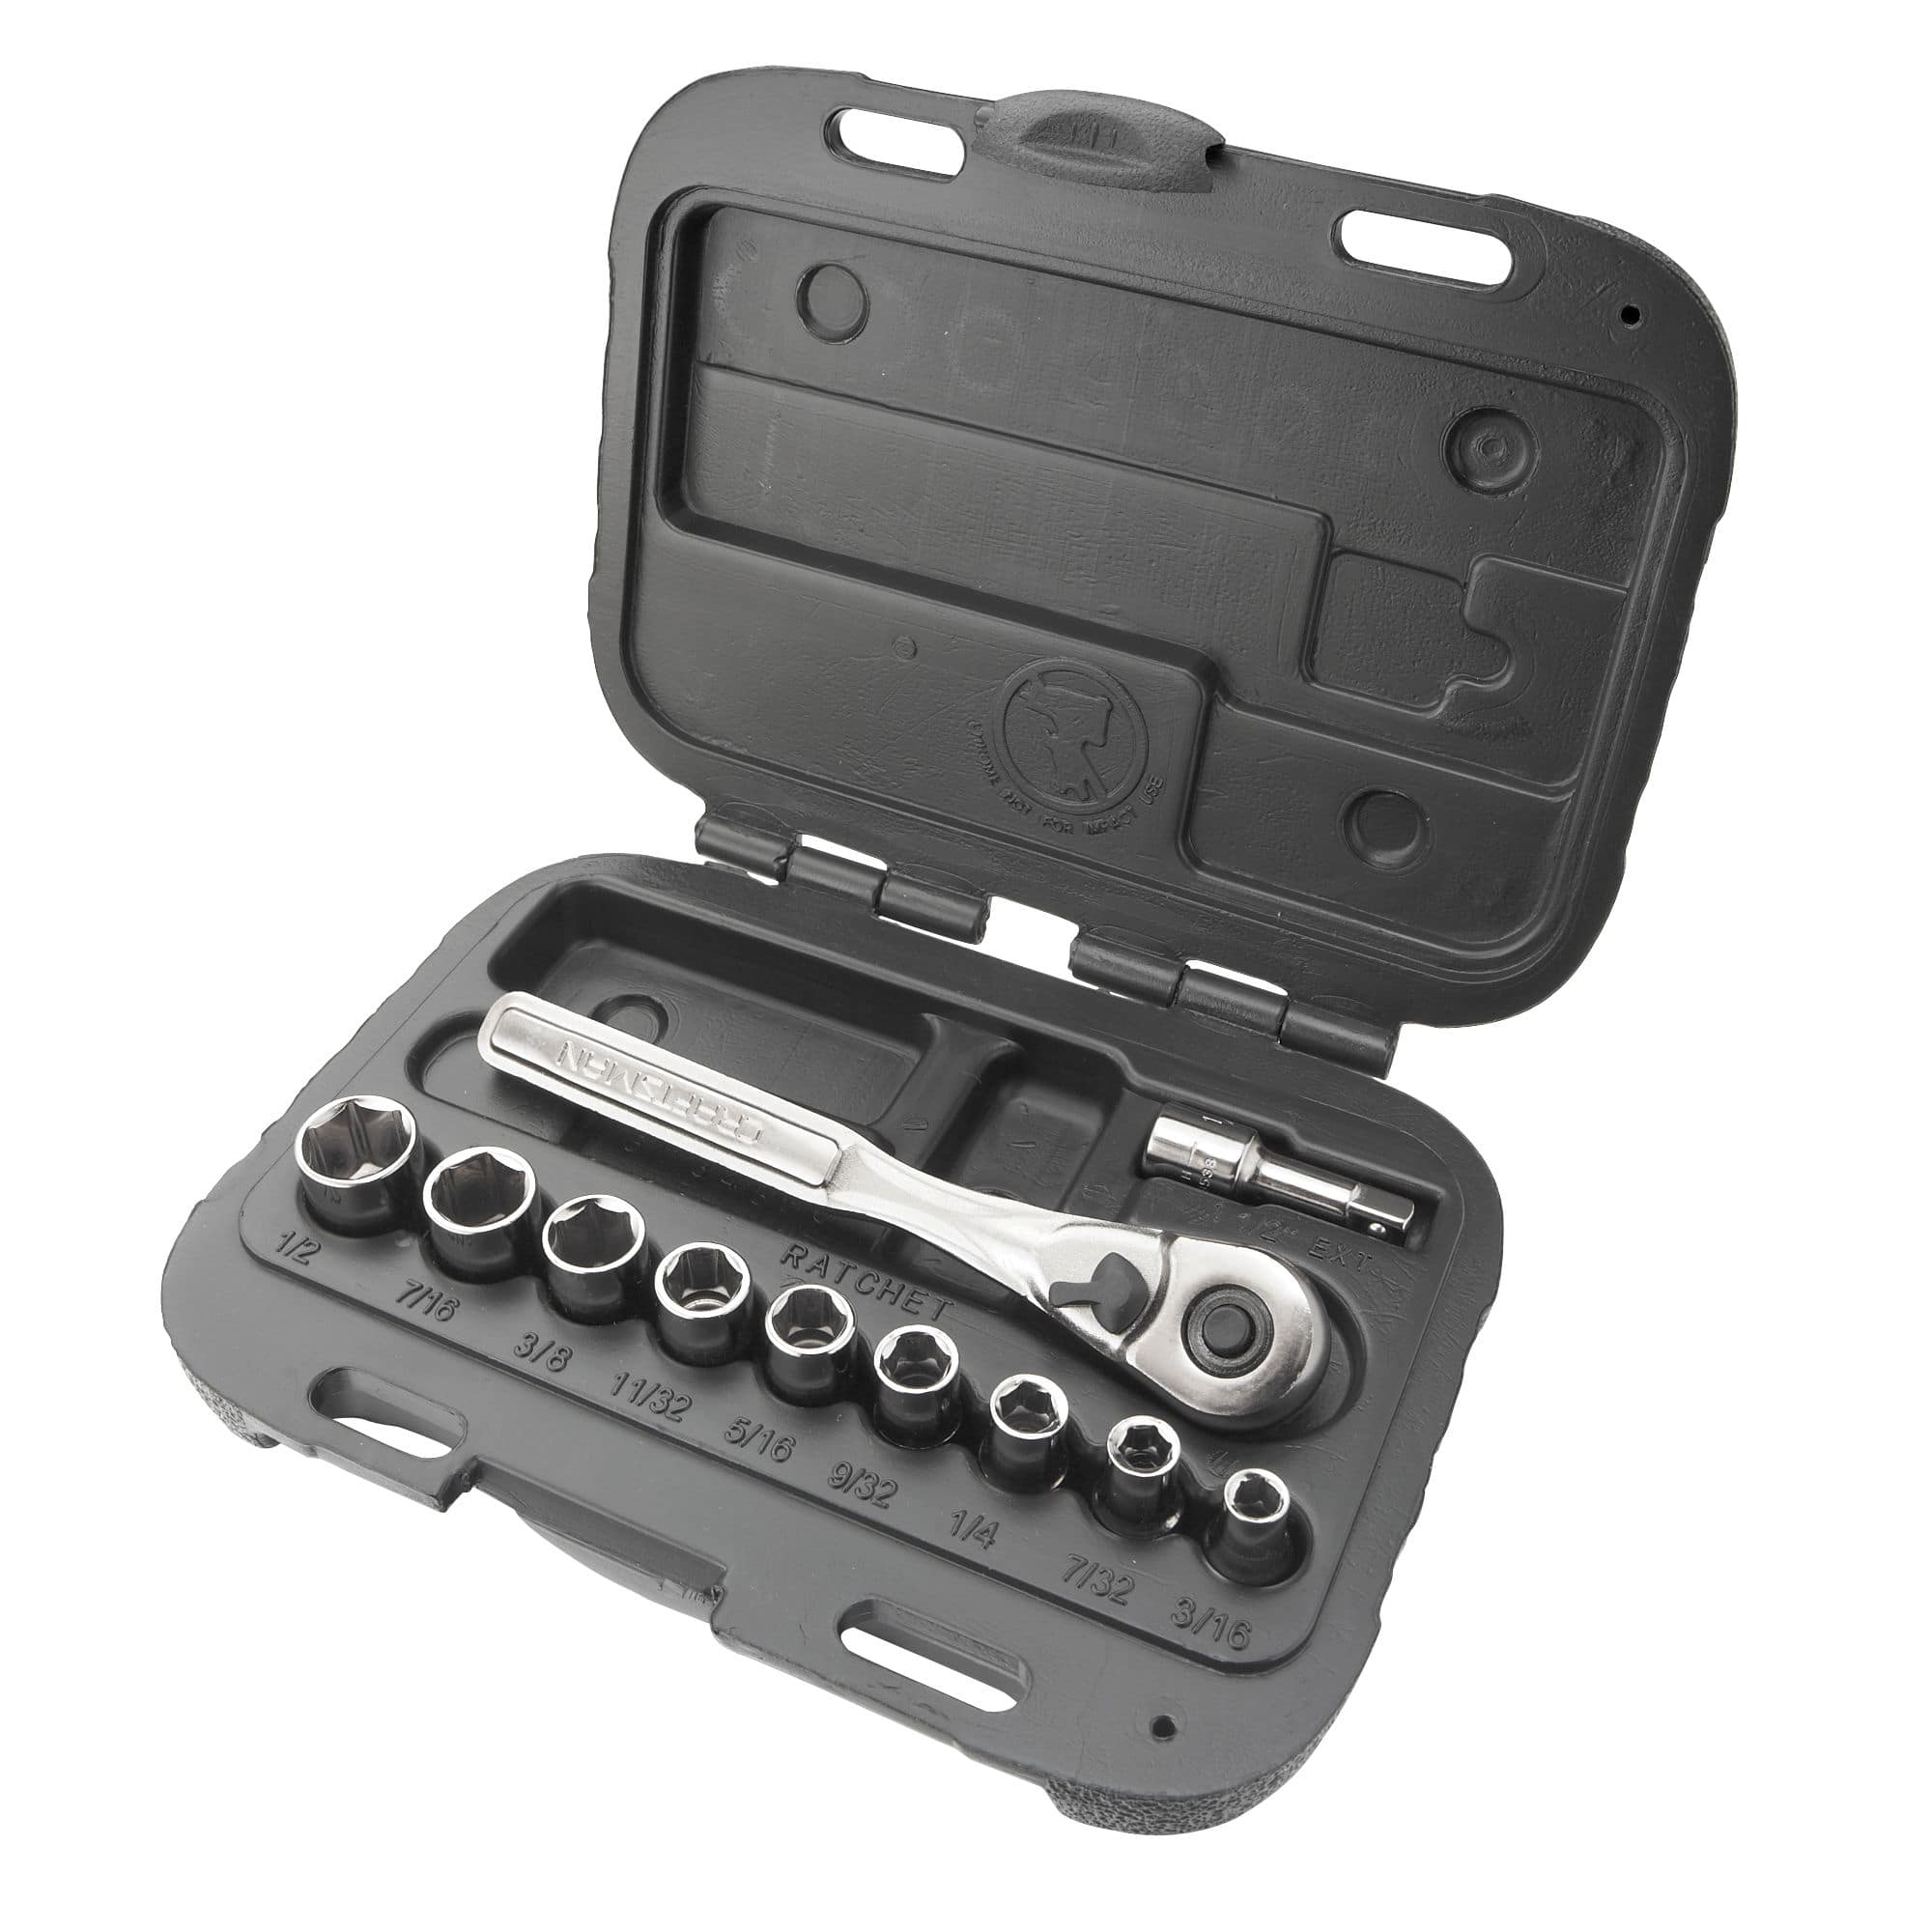 """11-Piece Craftsman 6-Point 1/4"""" Drive Socket Wrench Set (Metric or Standard) $9.99 + Free Store Pickup ~ Sears"""